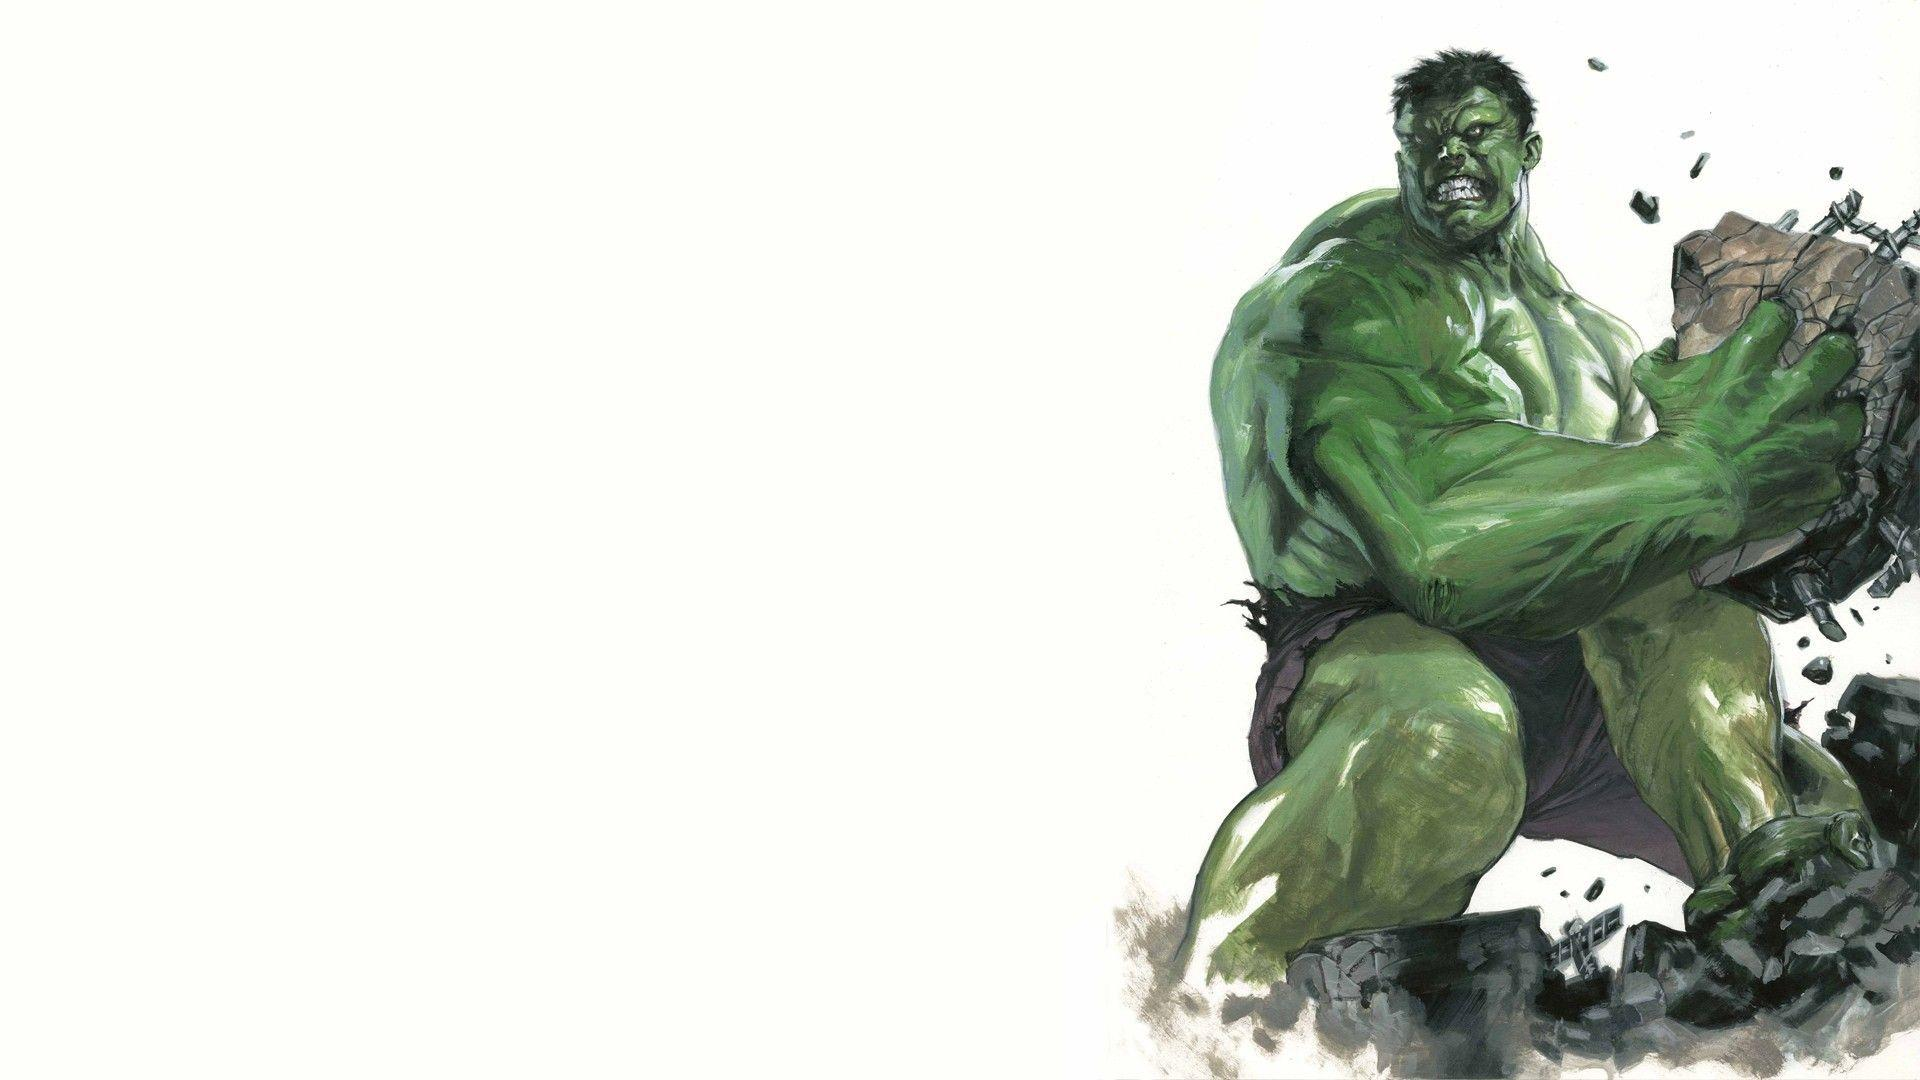 Hulk Computer Wallpapers, Desktop Backgrounds 1920x1080 Id: 315080